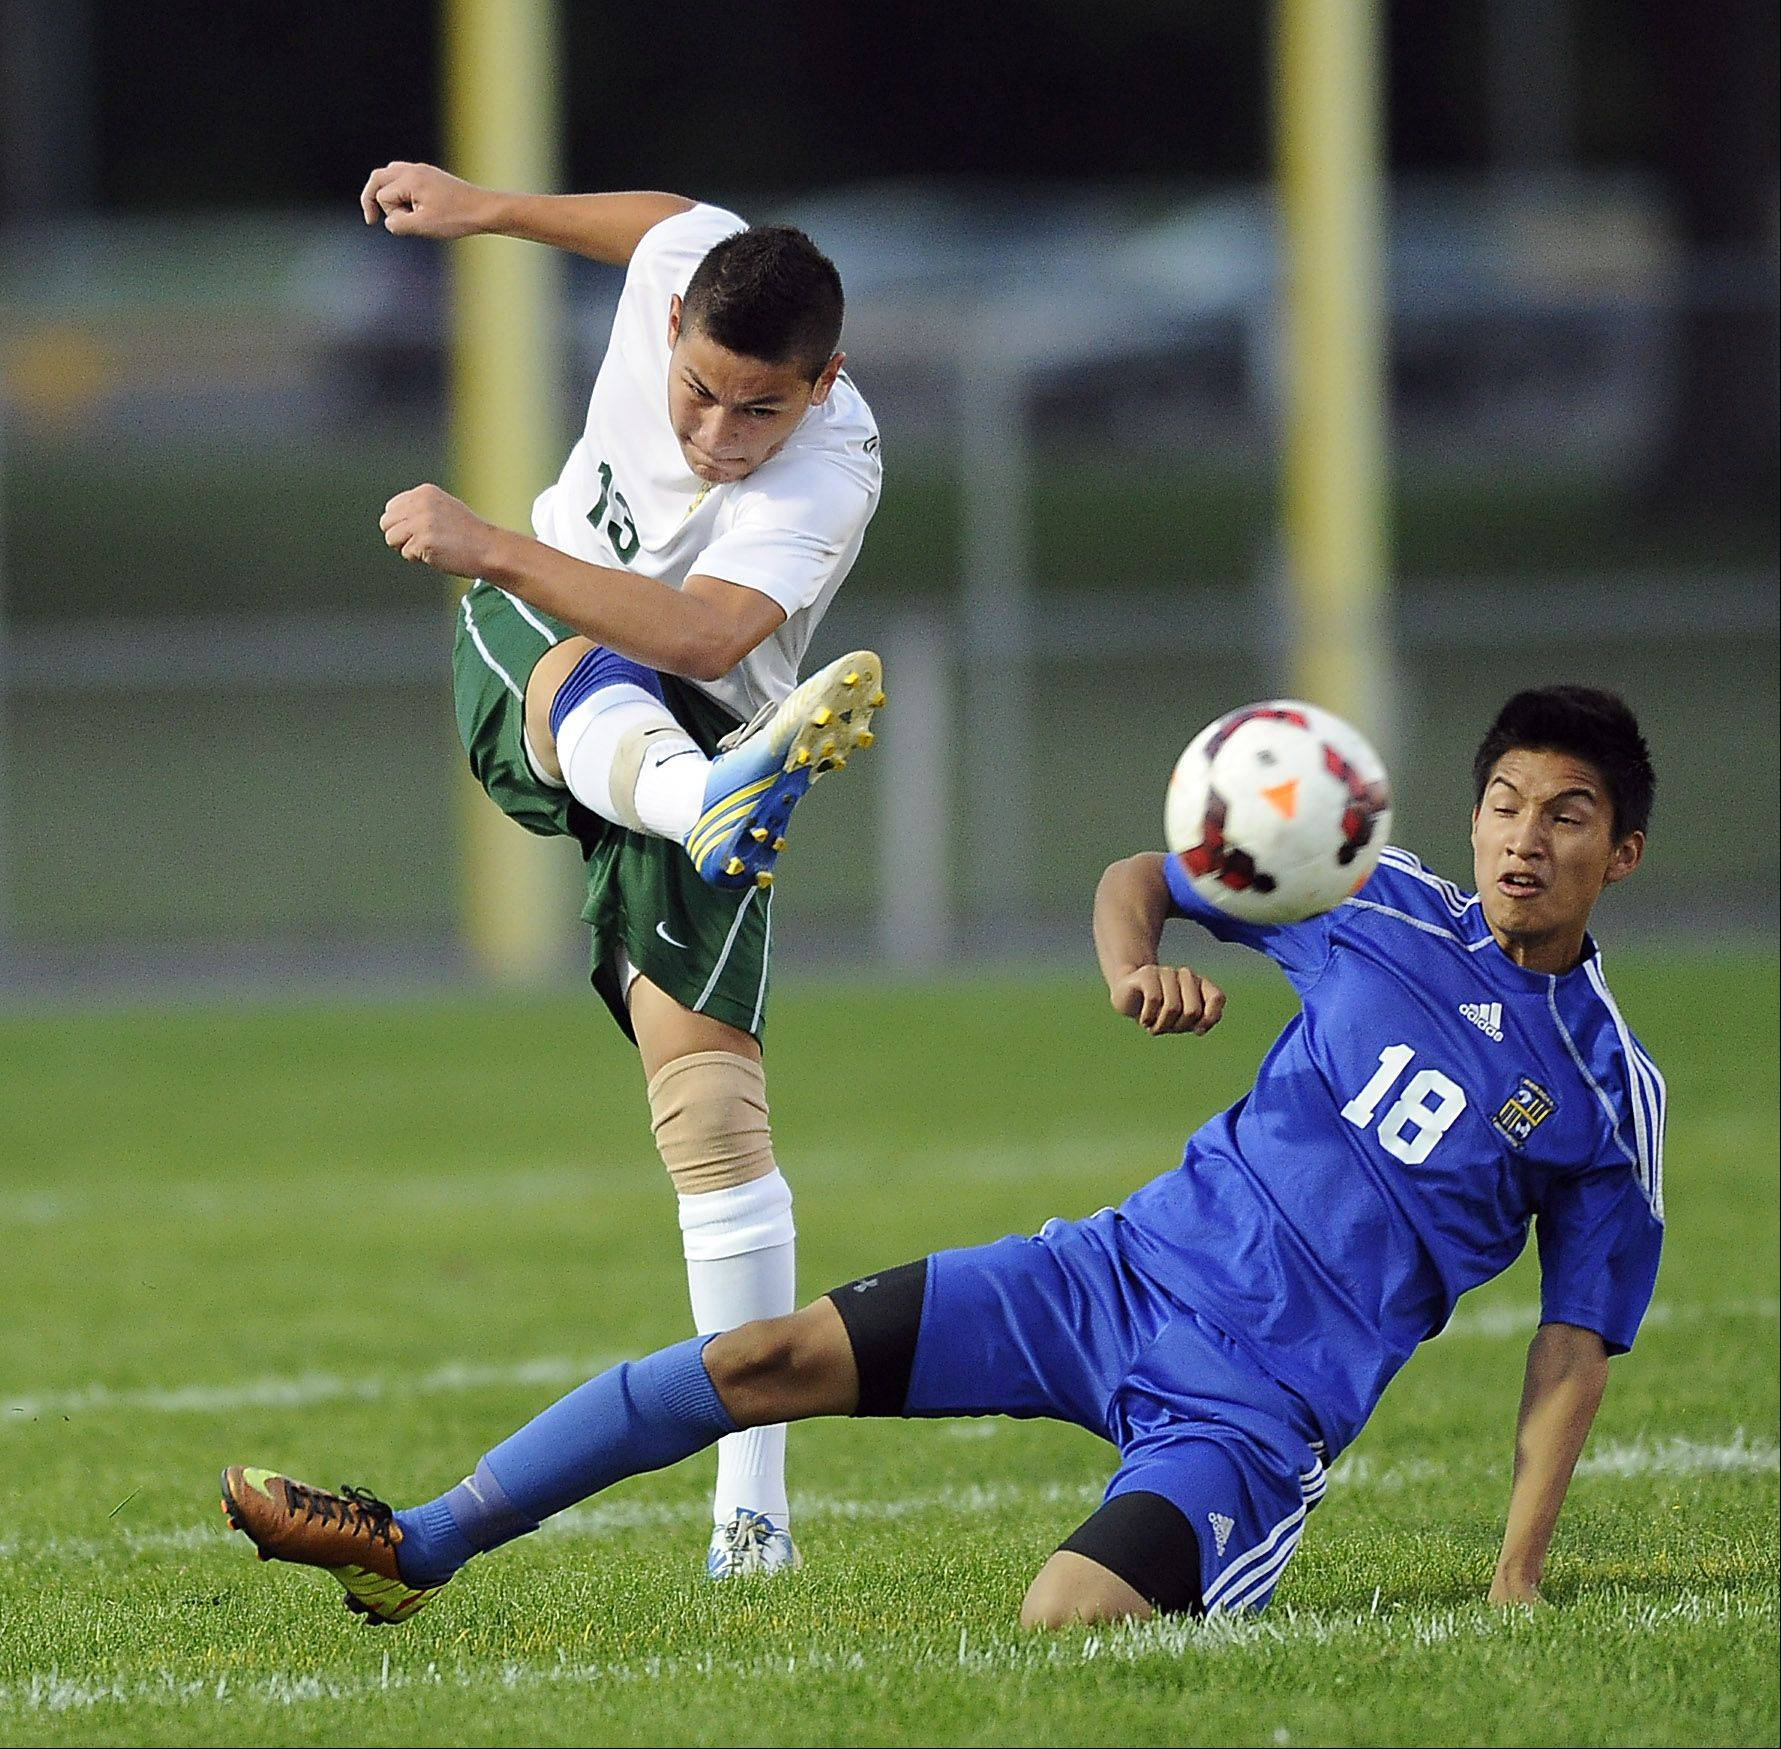 Elk Grove�s Arnold Aguilar and Wheeling�s Elias Cisneros battle for the ball in the first period at Elk Grove on Thursday.